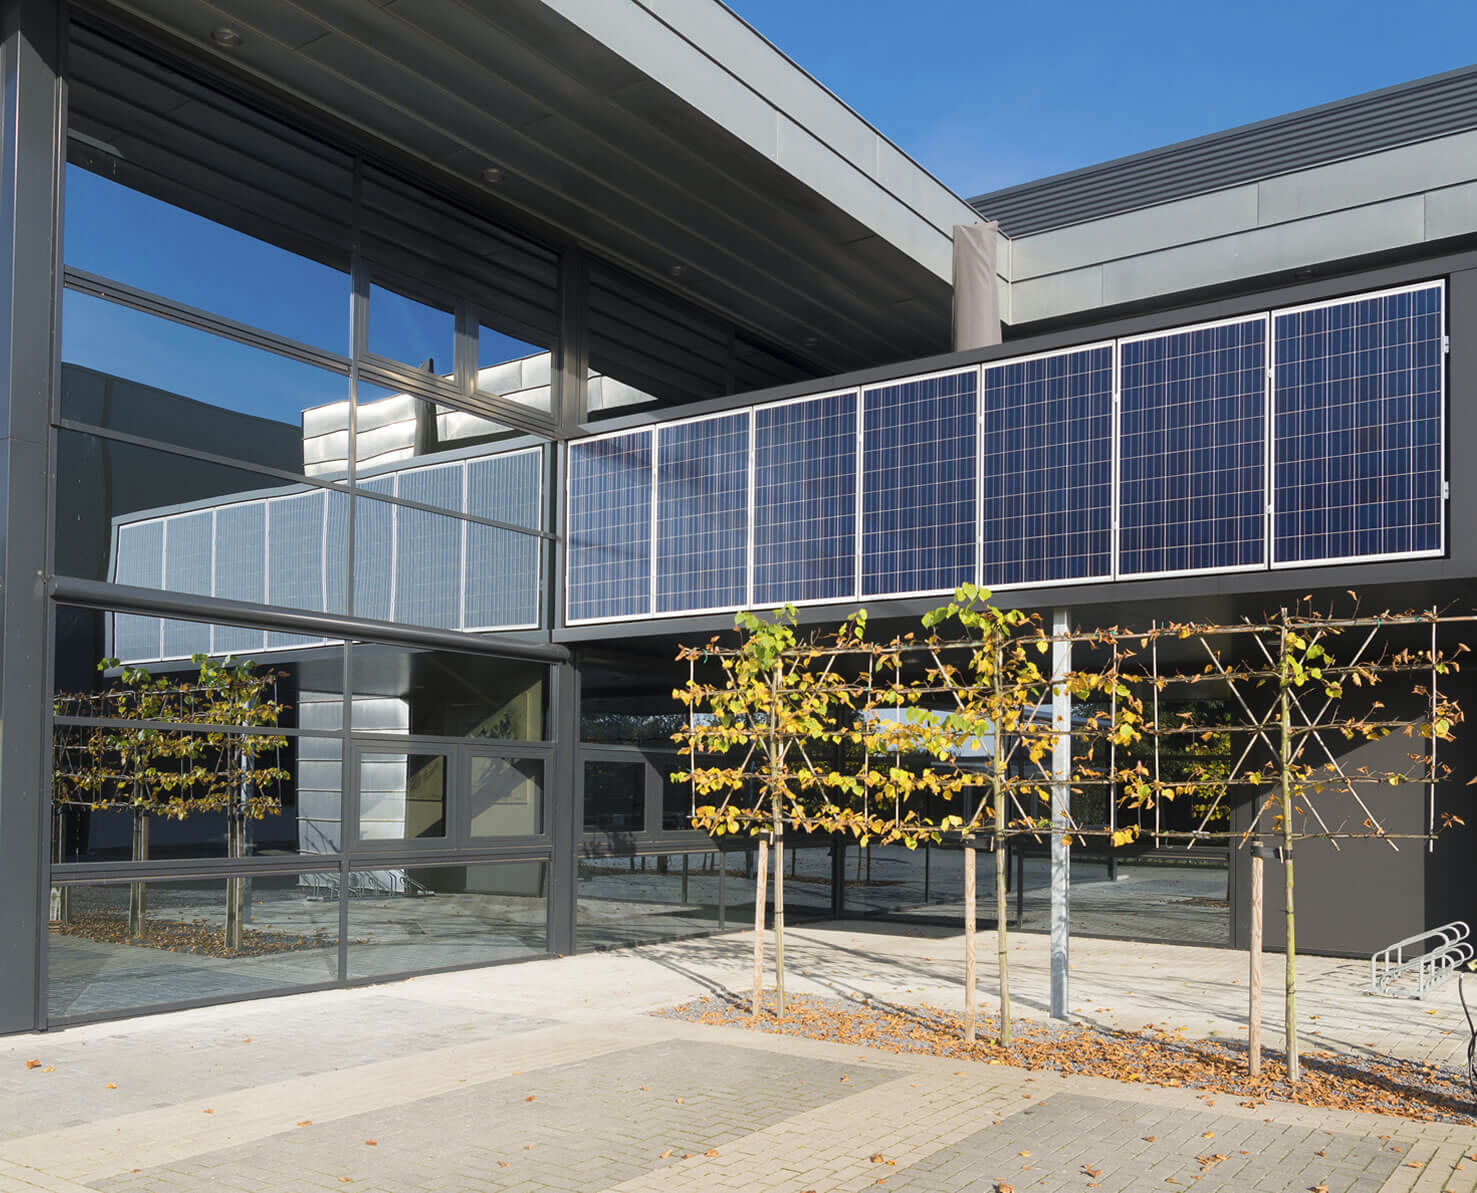 The best ways for commercial buildings to be made more green and energy efficient